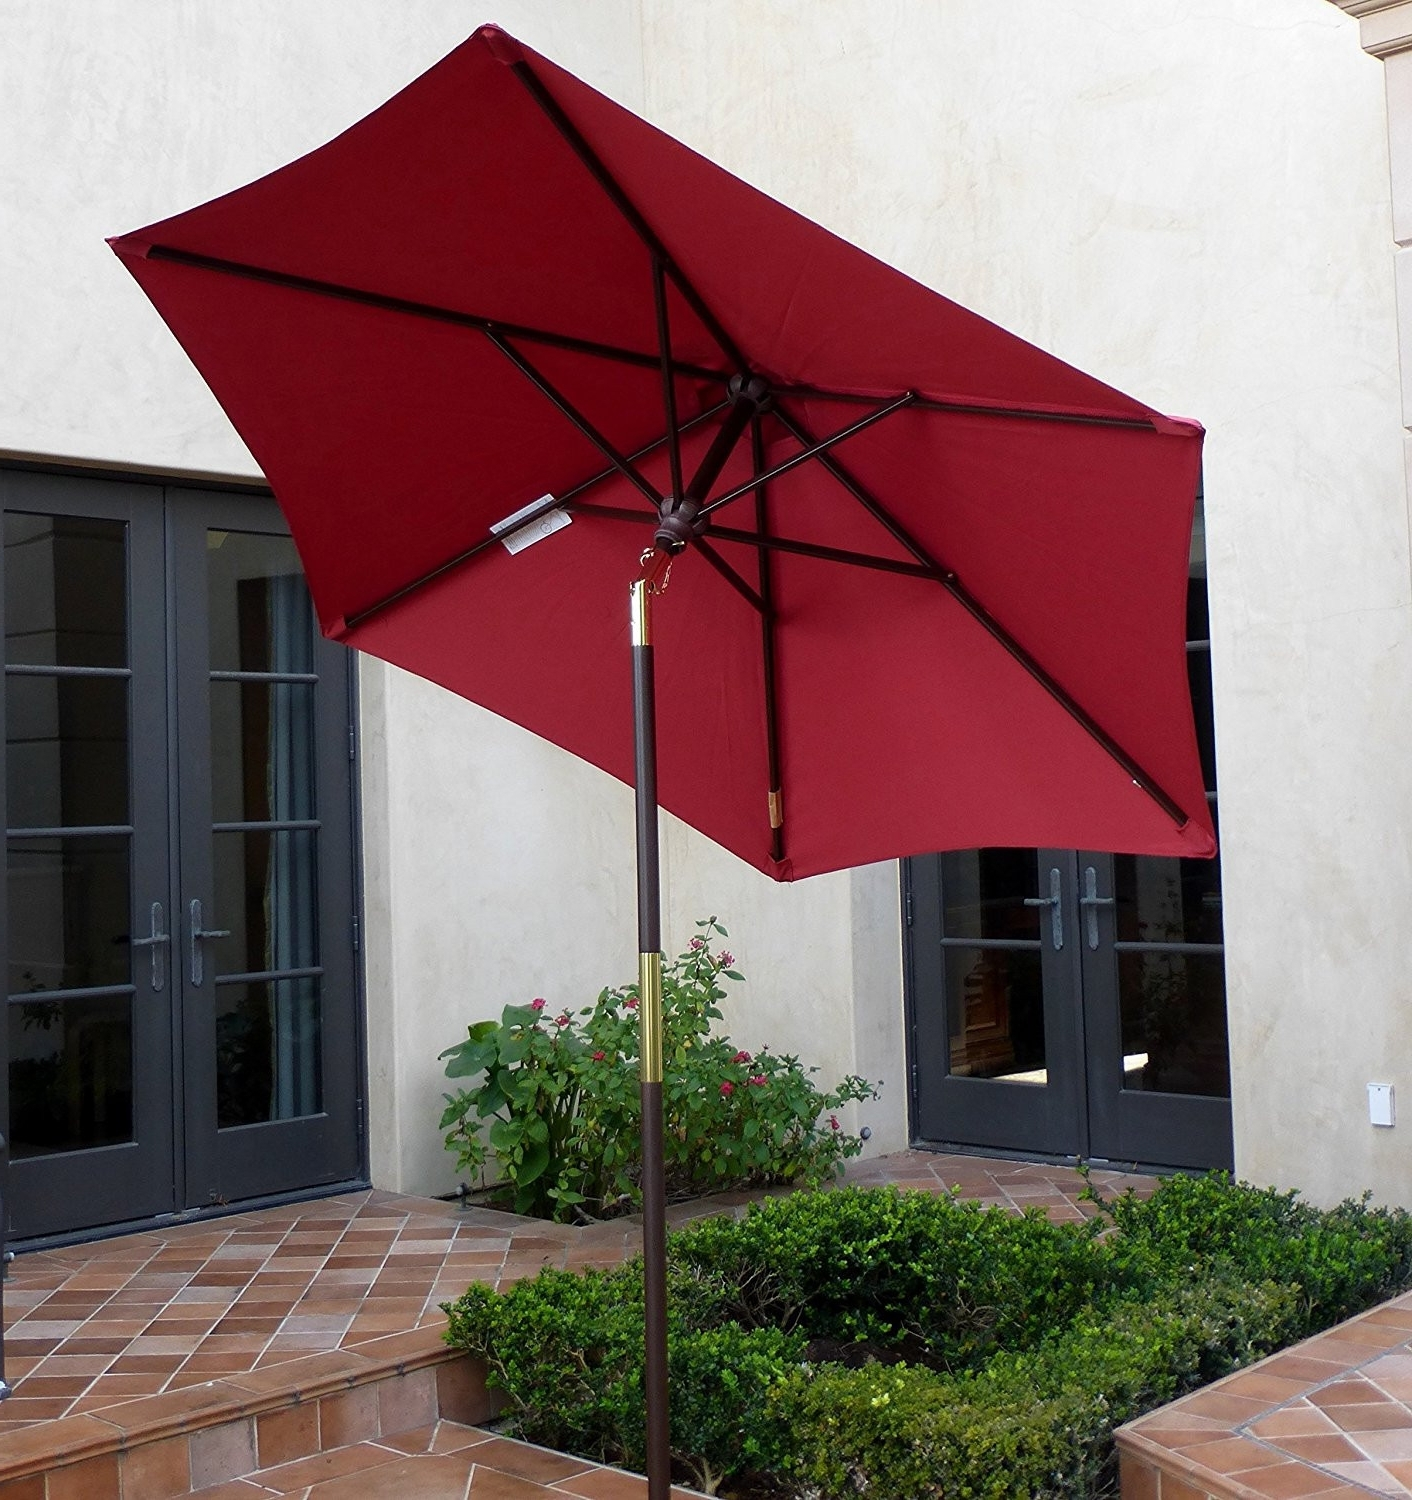 Commercial Outdoor Umbrellas Elegant Best For High Wind Areas This Intended For Well Liked Patio Umbrellas For High Wind Areas (View 16 of 20)